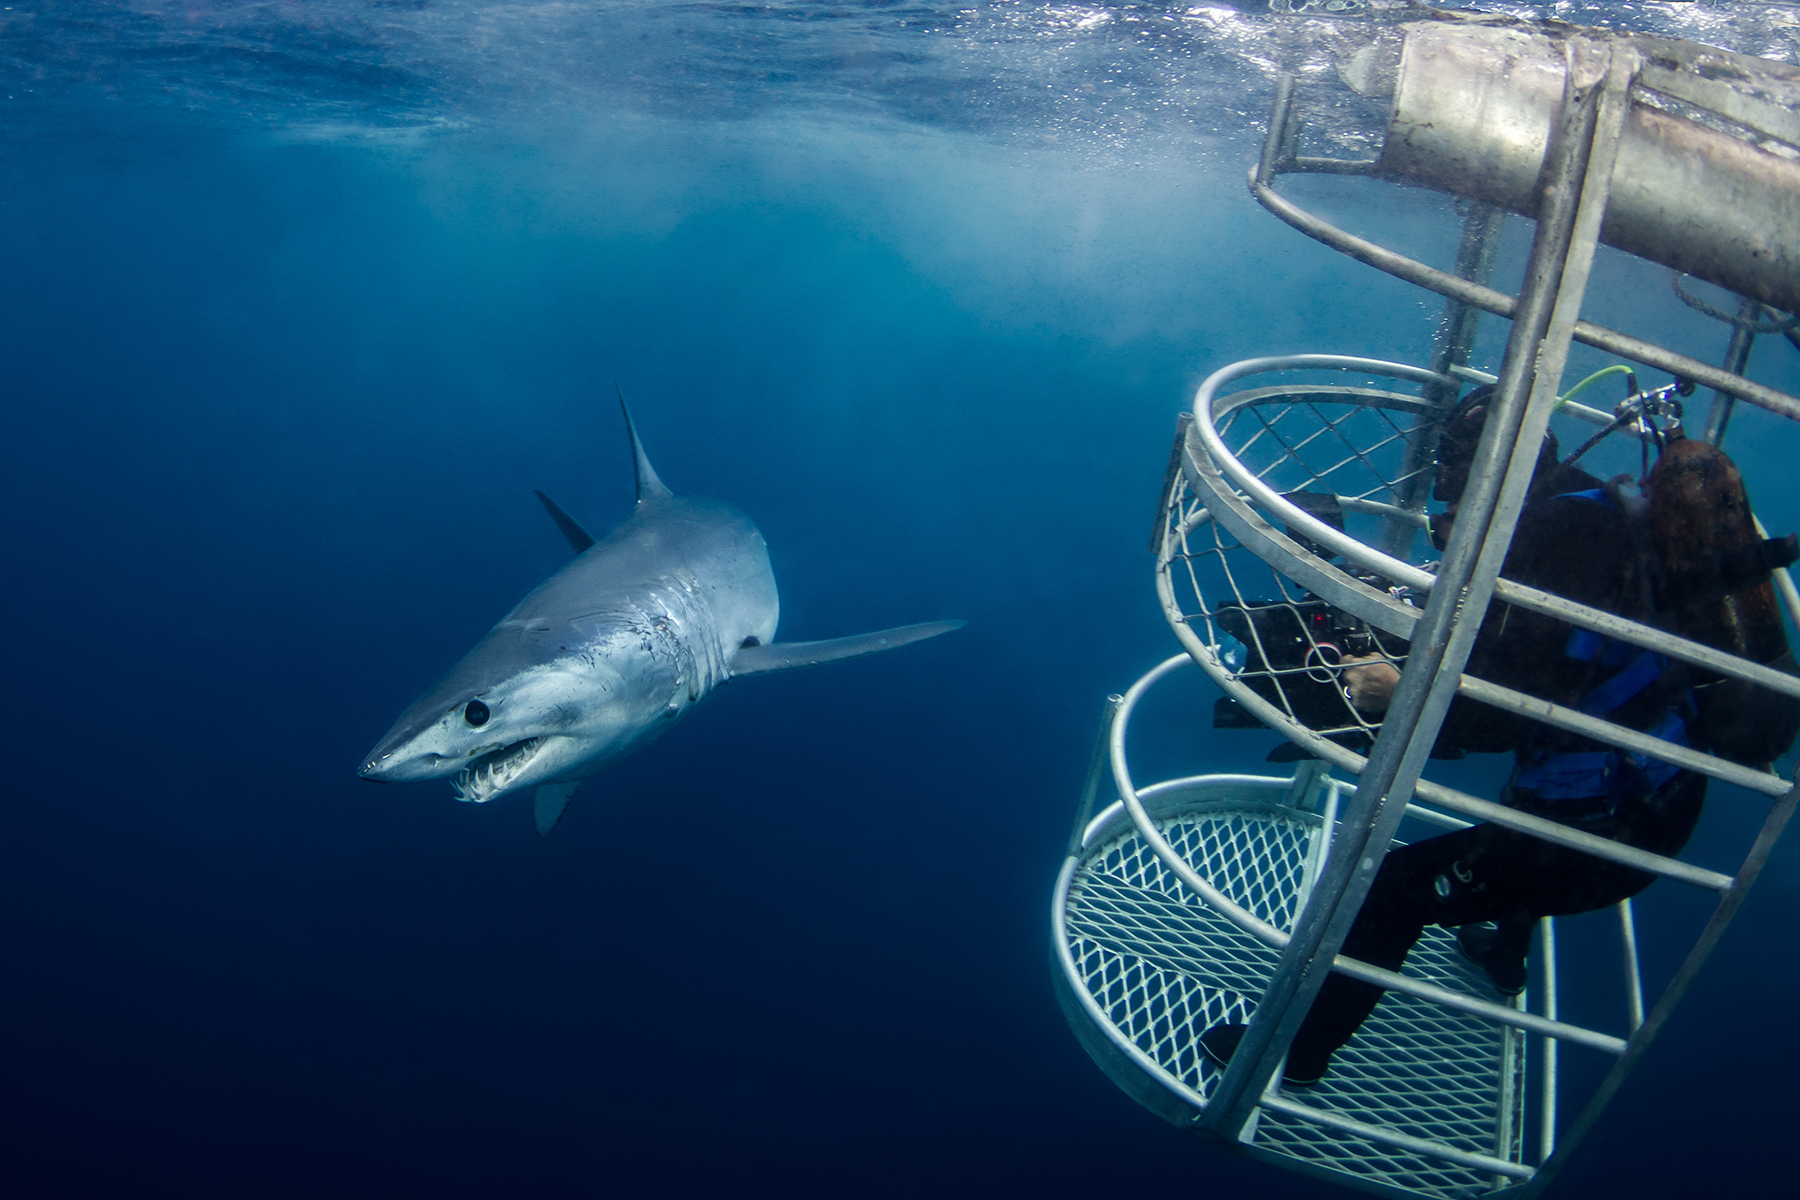 Swimming with sharks in Port Lincoln, Australia